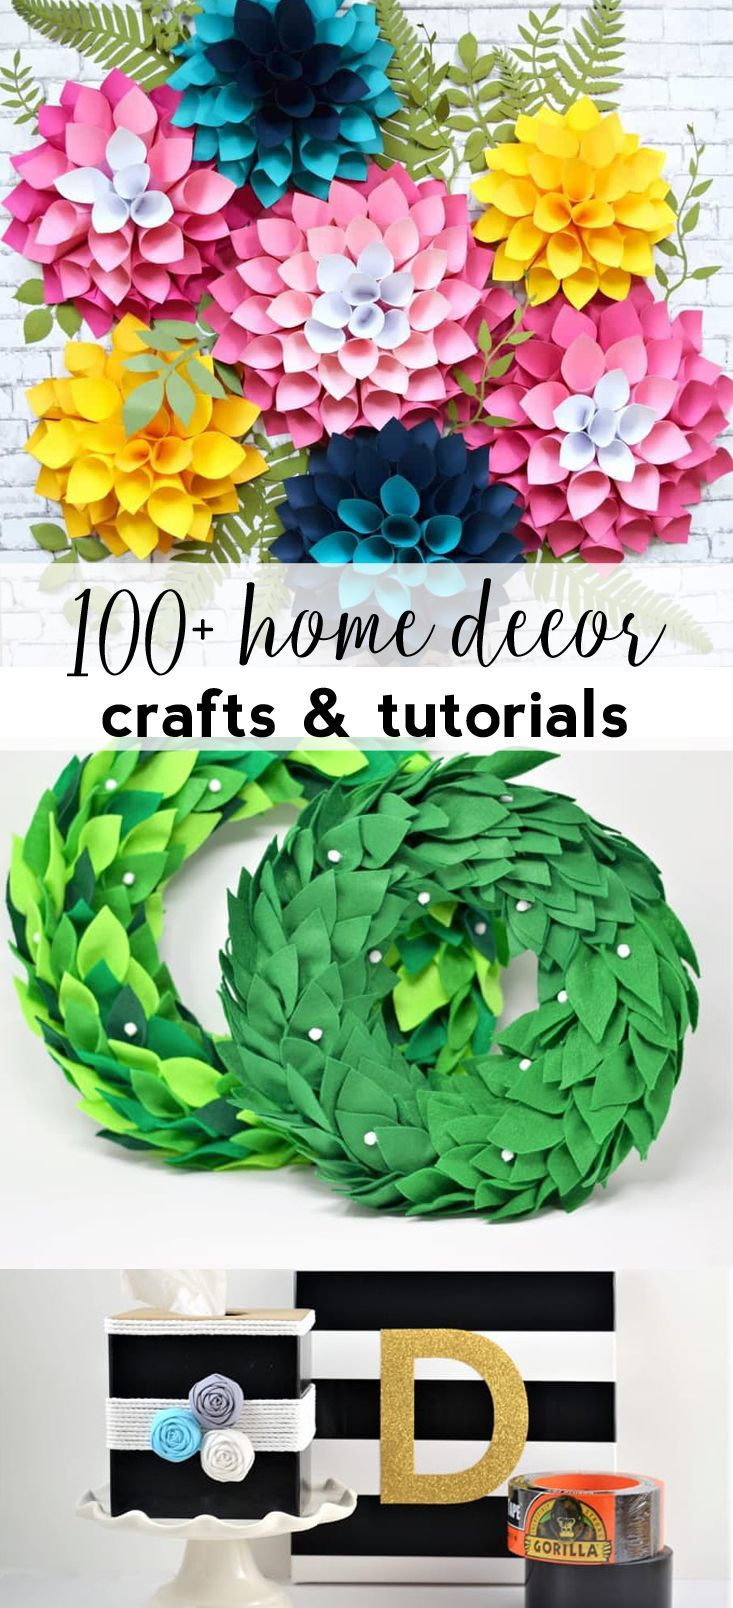 Home Decor Ideas Wall Art Crafts Diy